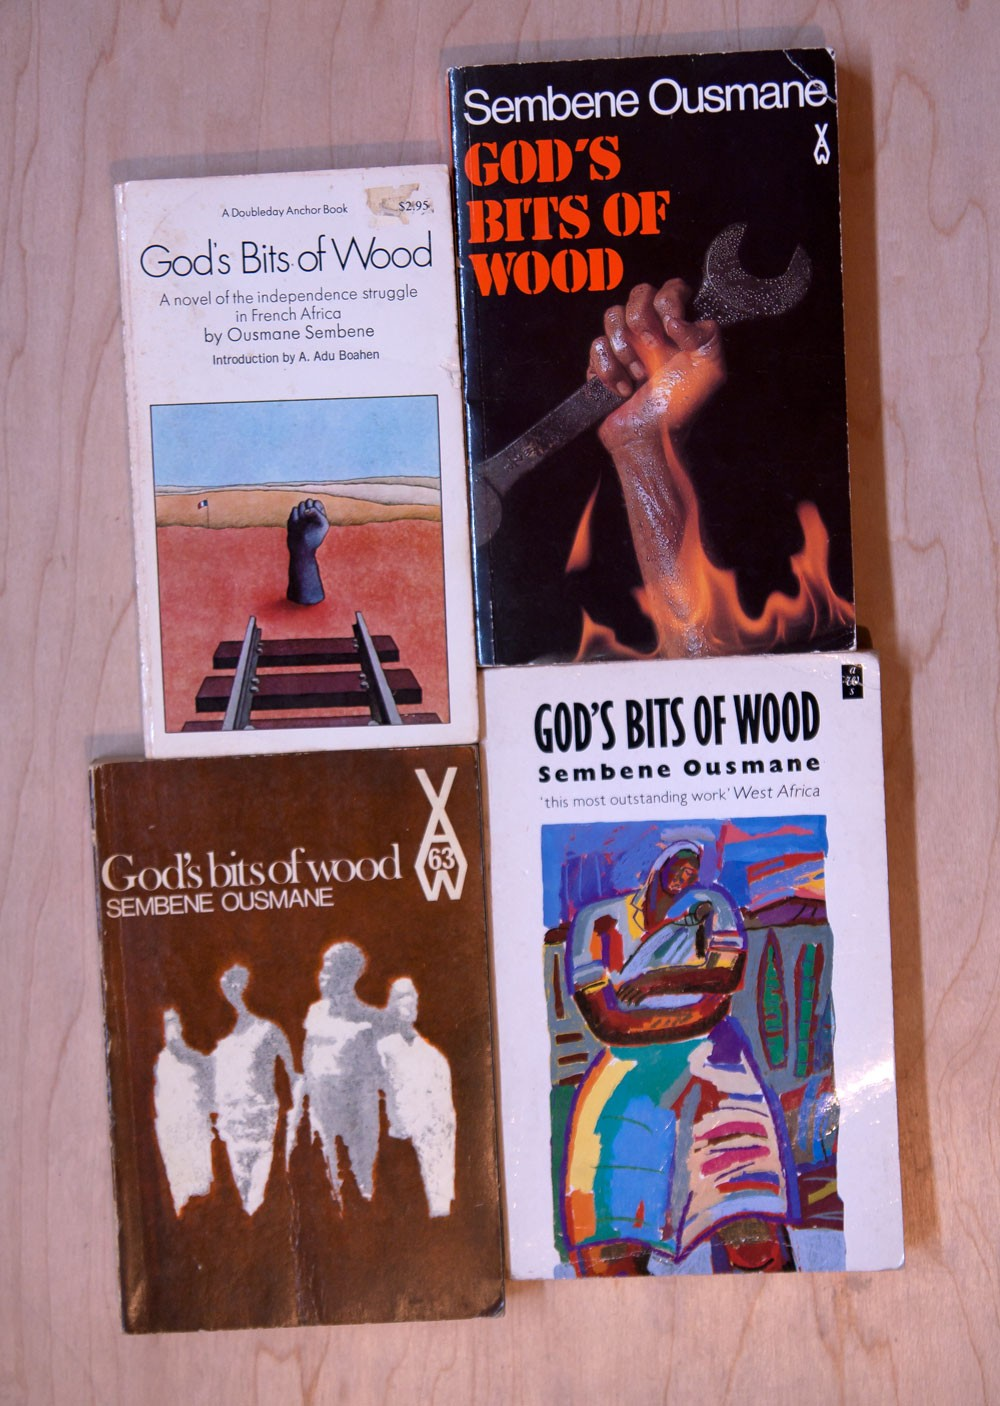 a comparison of gods bits of wood by sembene ousmane and our strike by frederick cooper 13 'revolution' was the word used by a strike veteran adoulaye souleye sarr, interview, thiès, 22 july 1990, by mor sene, babacar fall and frederick cooper he pointed to the milieu of thiès as the incubus of the revolution.